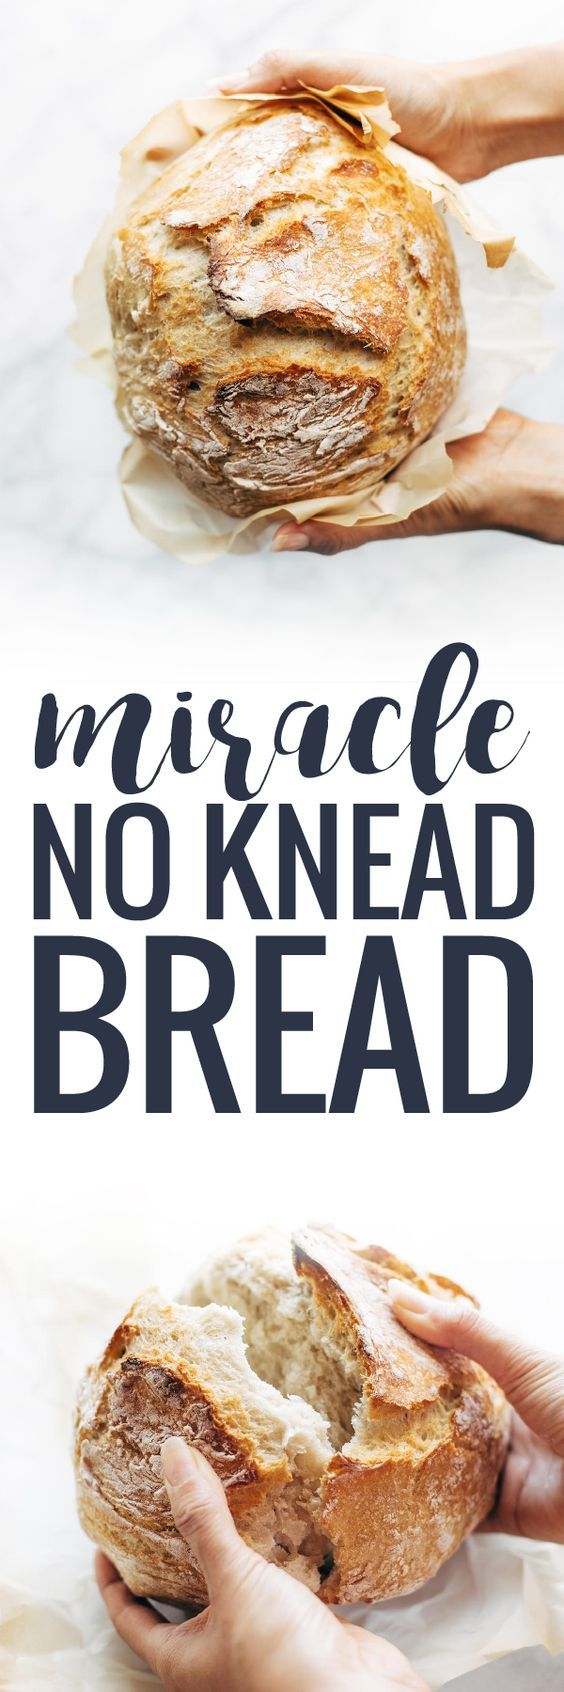 Miracle No Knead Bread! this is SO UNBELIEVABLY GOOD and ridiculously easy to make. crusty outside, soft and chewy inside - perfect for dunking in soups! | pinchofyum.com